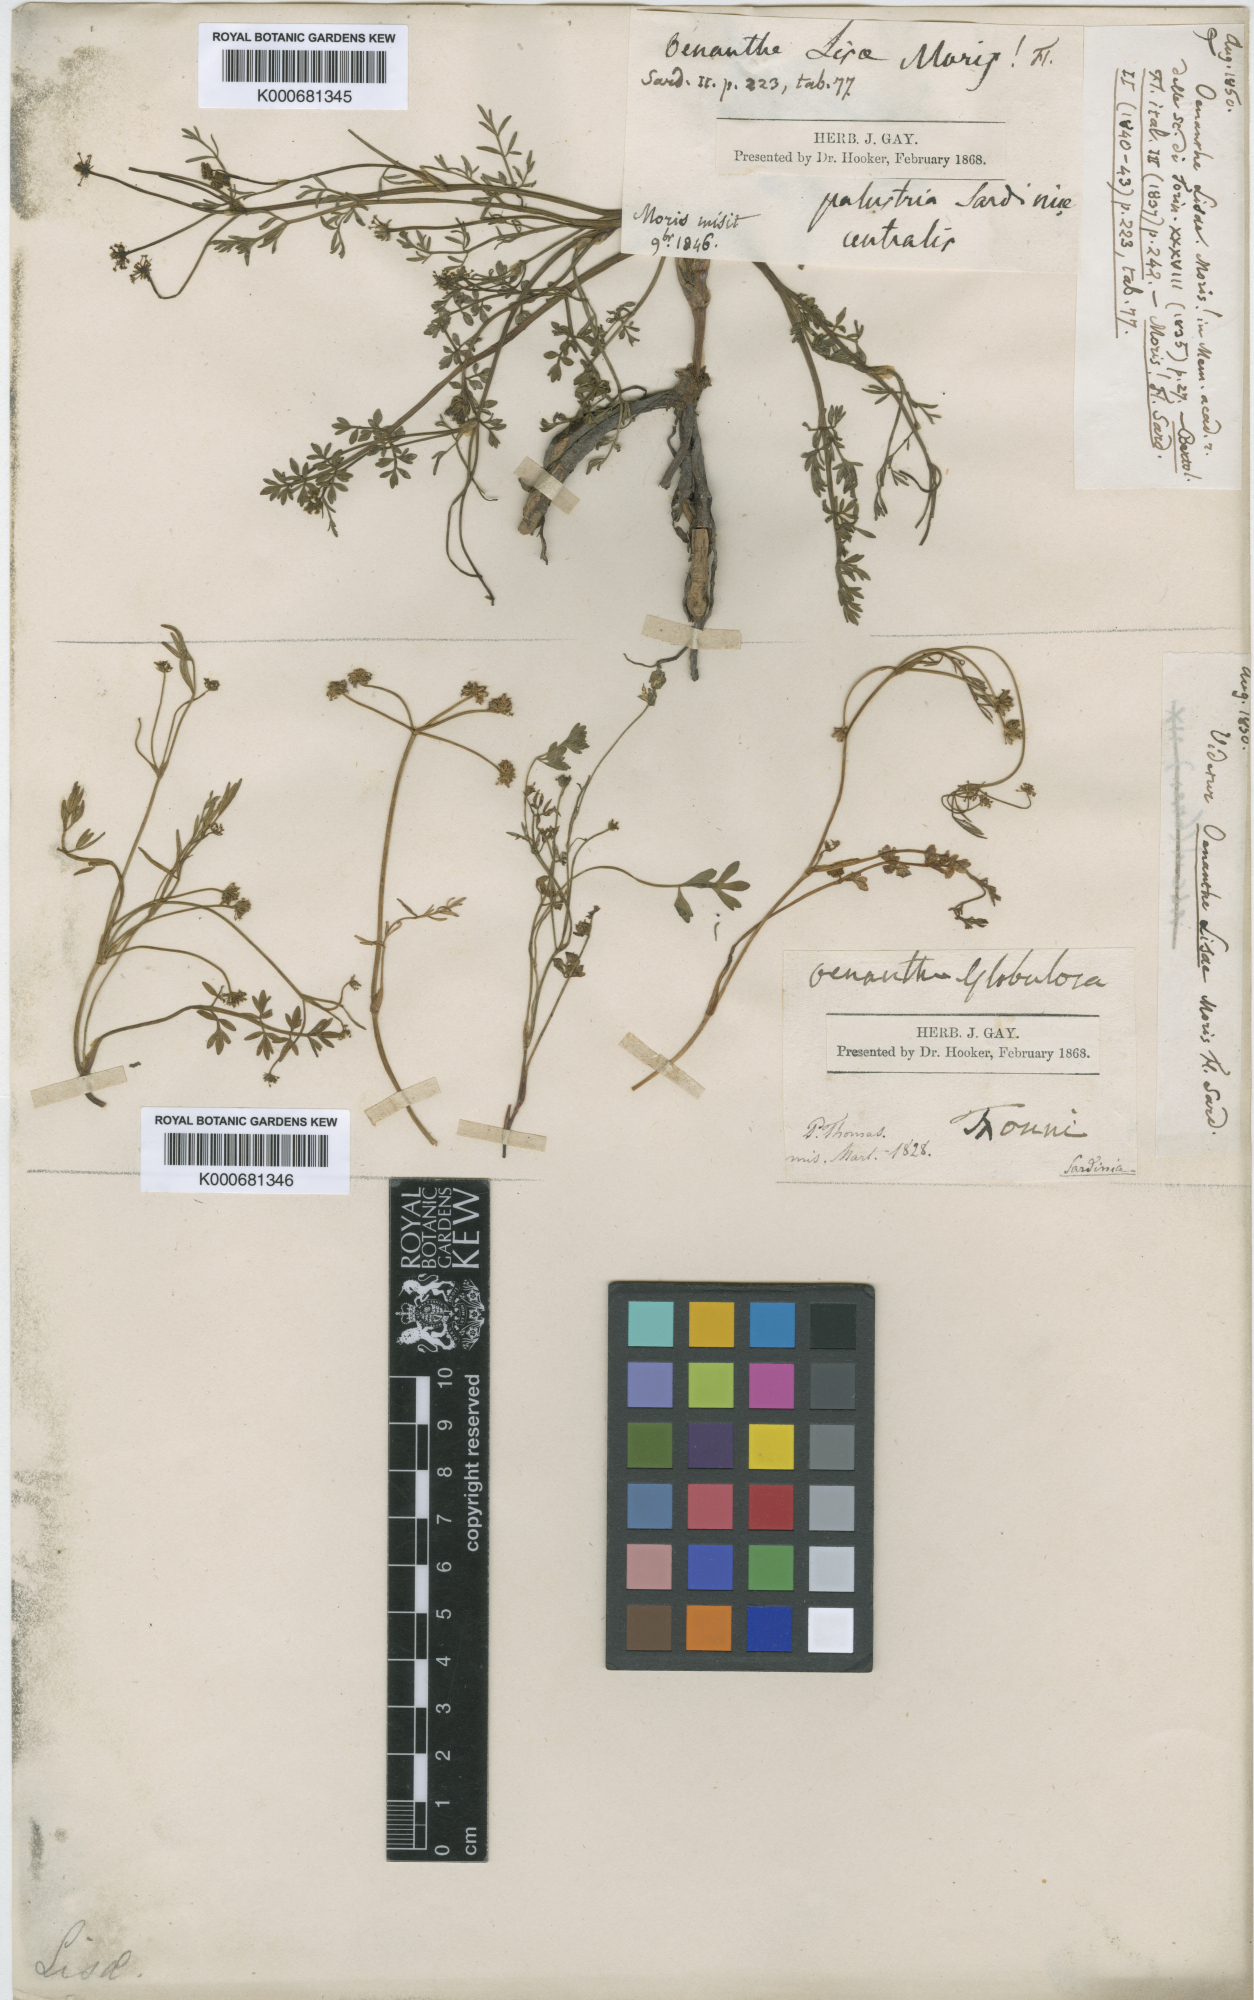 © The Board of Trustees of the Royal Botanic Gardens, Kew.<br>